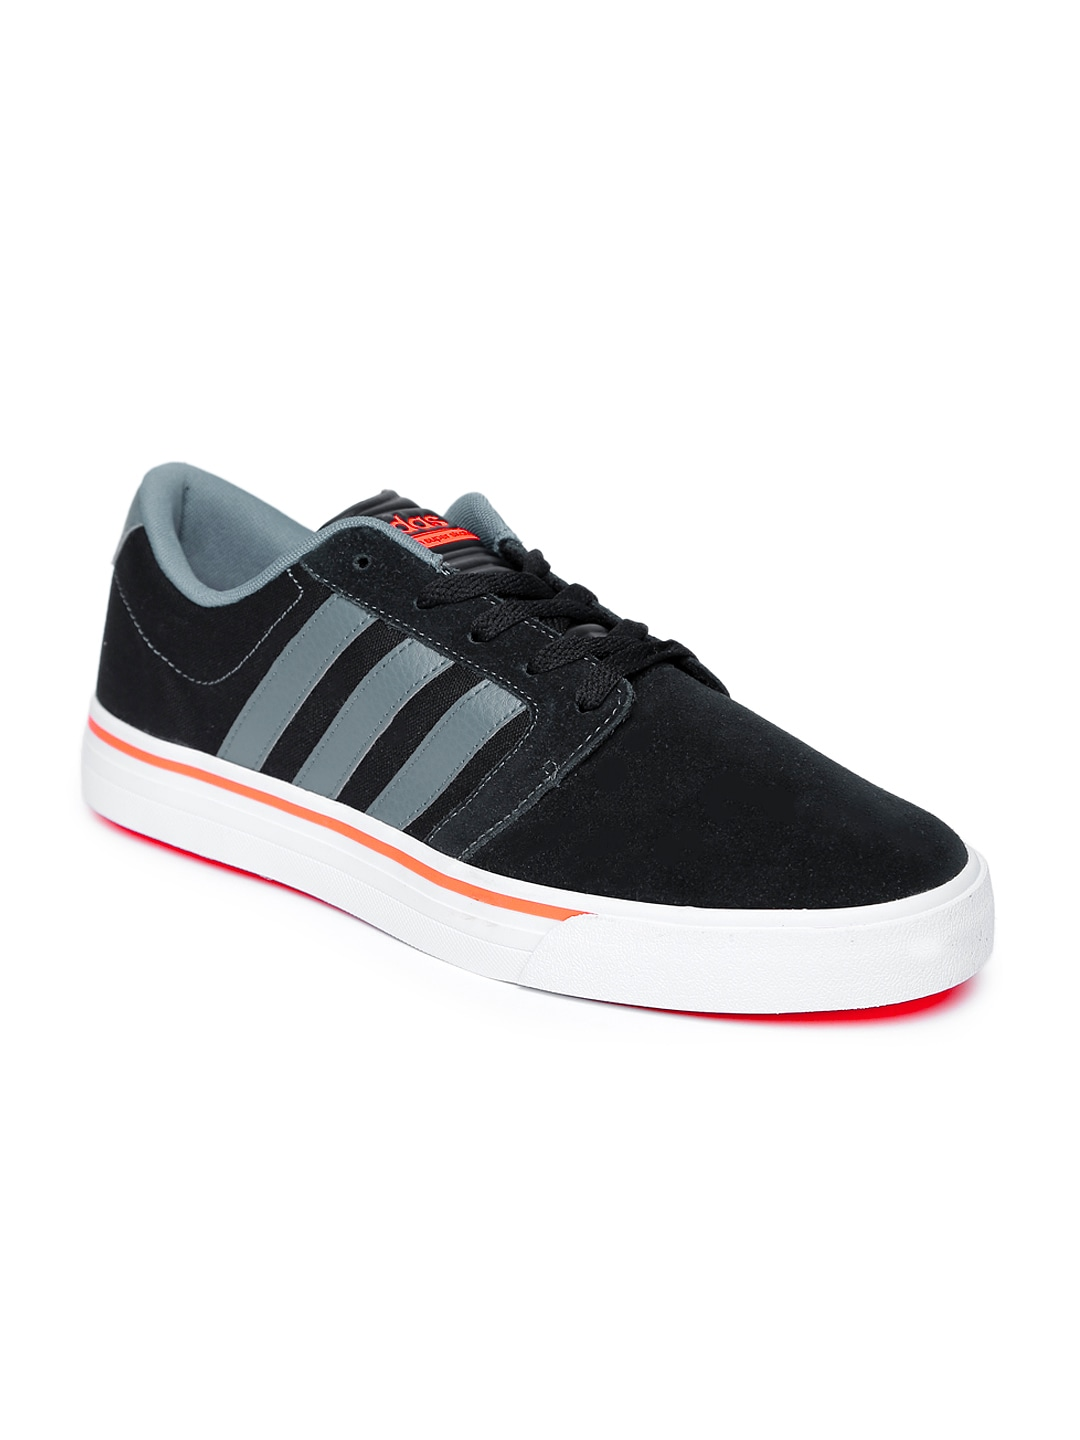 adidas neo sneakers,adipower golf > OFF63% Free shipping!